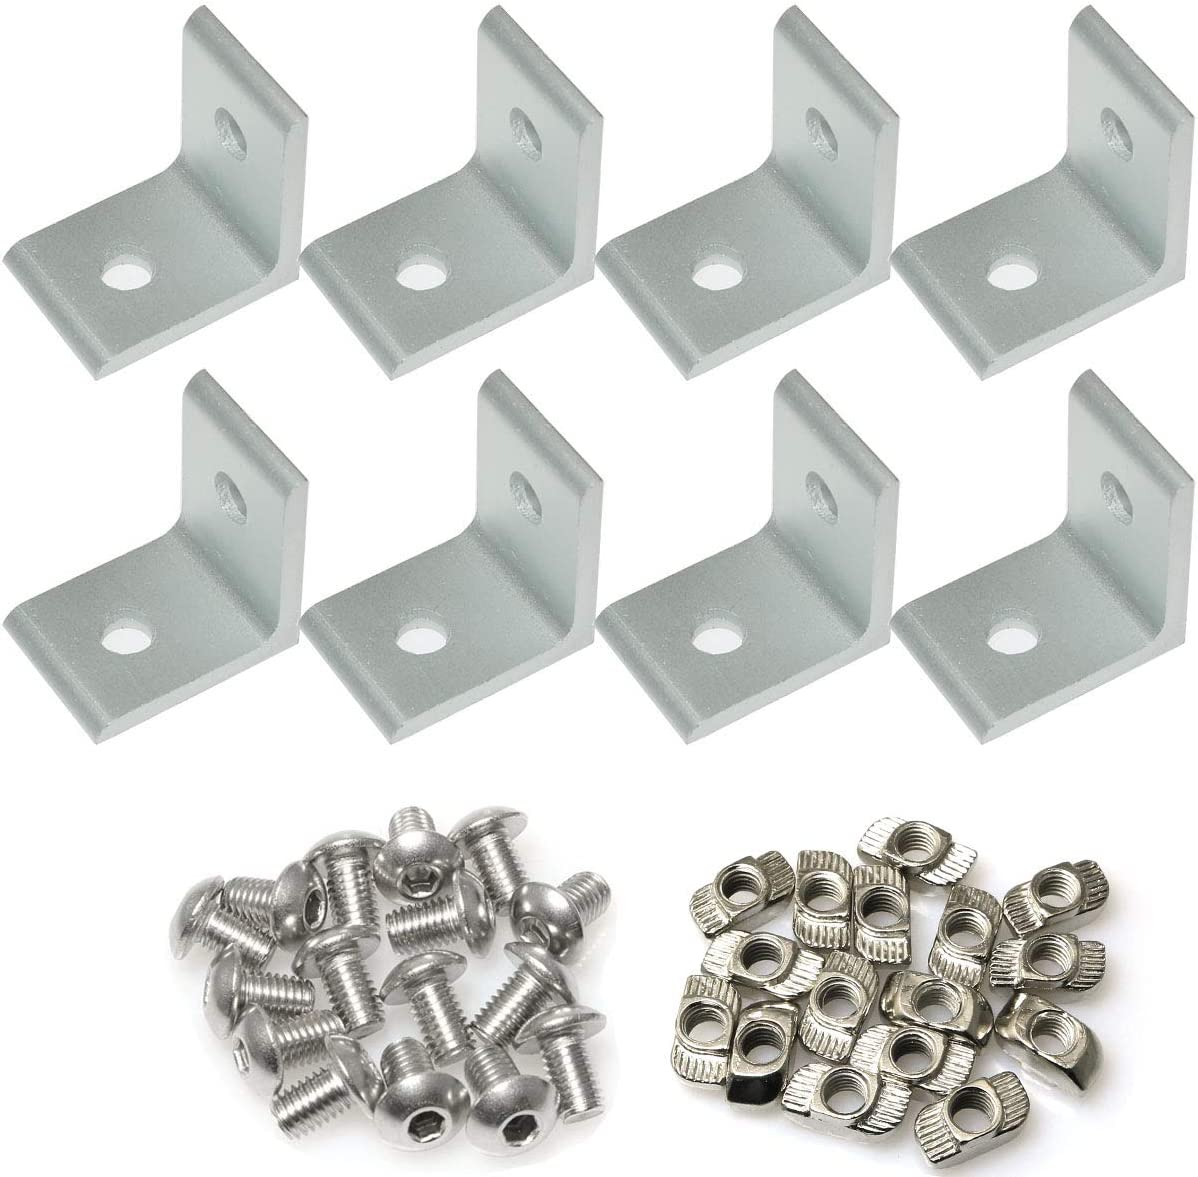 PZRT 8 Sets 2 Hole 90 Degree Corner 35% Bombing free shipping OFF Angle Plate Joint Series 30